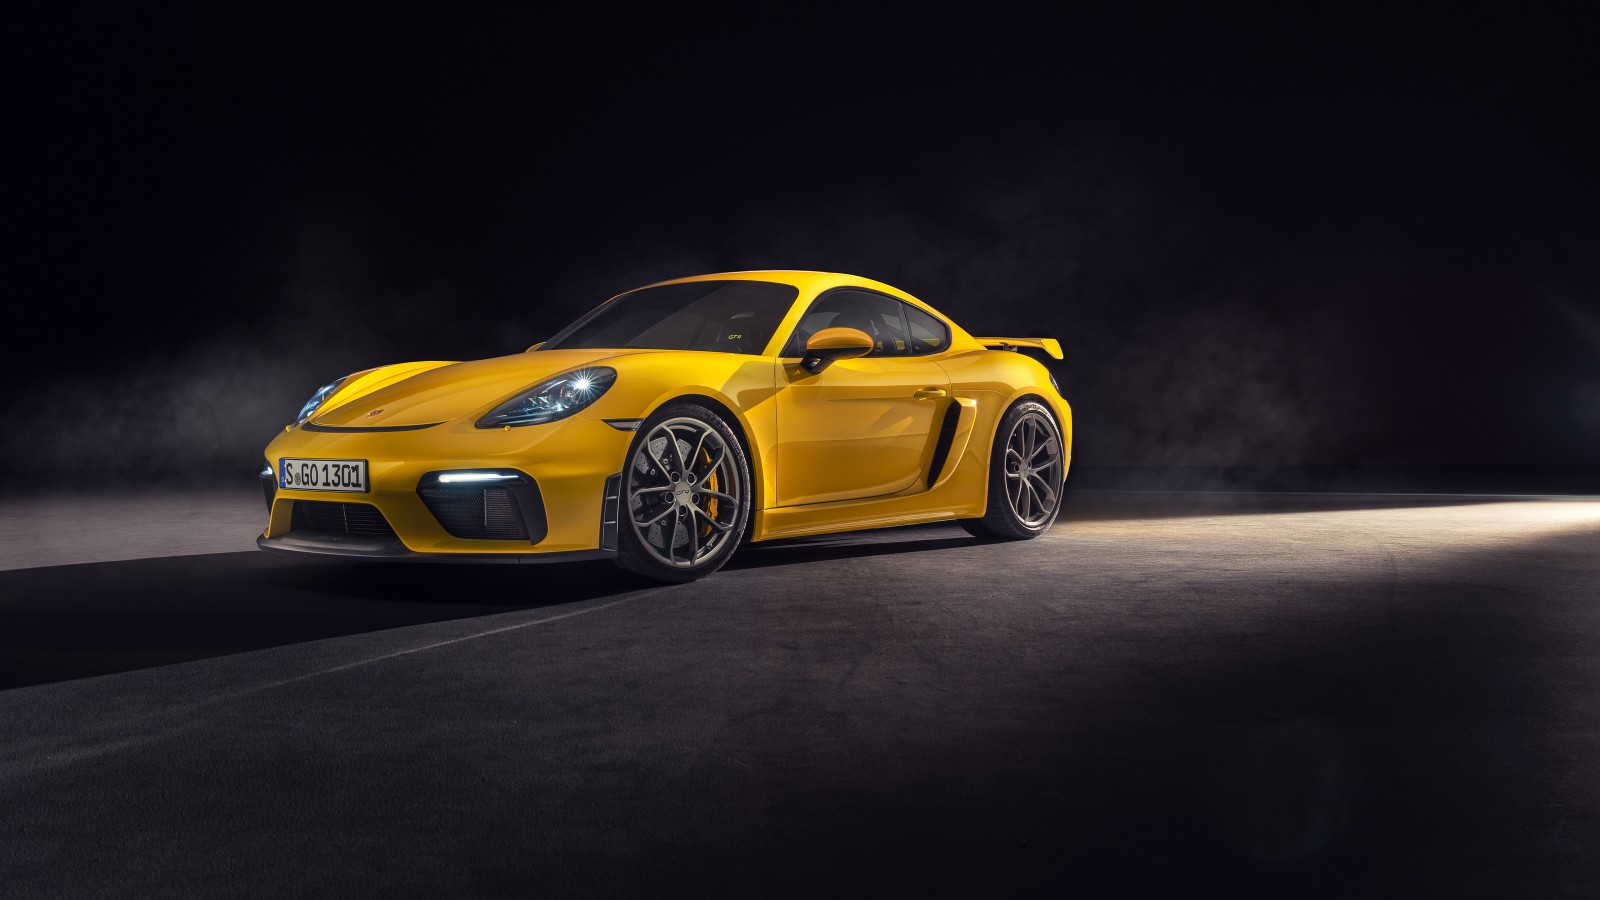 Porsche 718 Cayman Gt4 2019 4k Wallpaper Hd Car